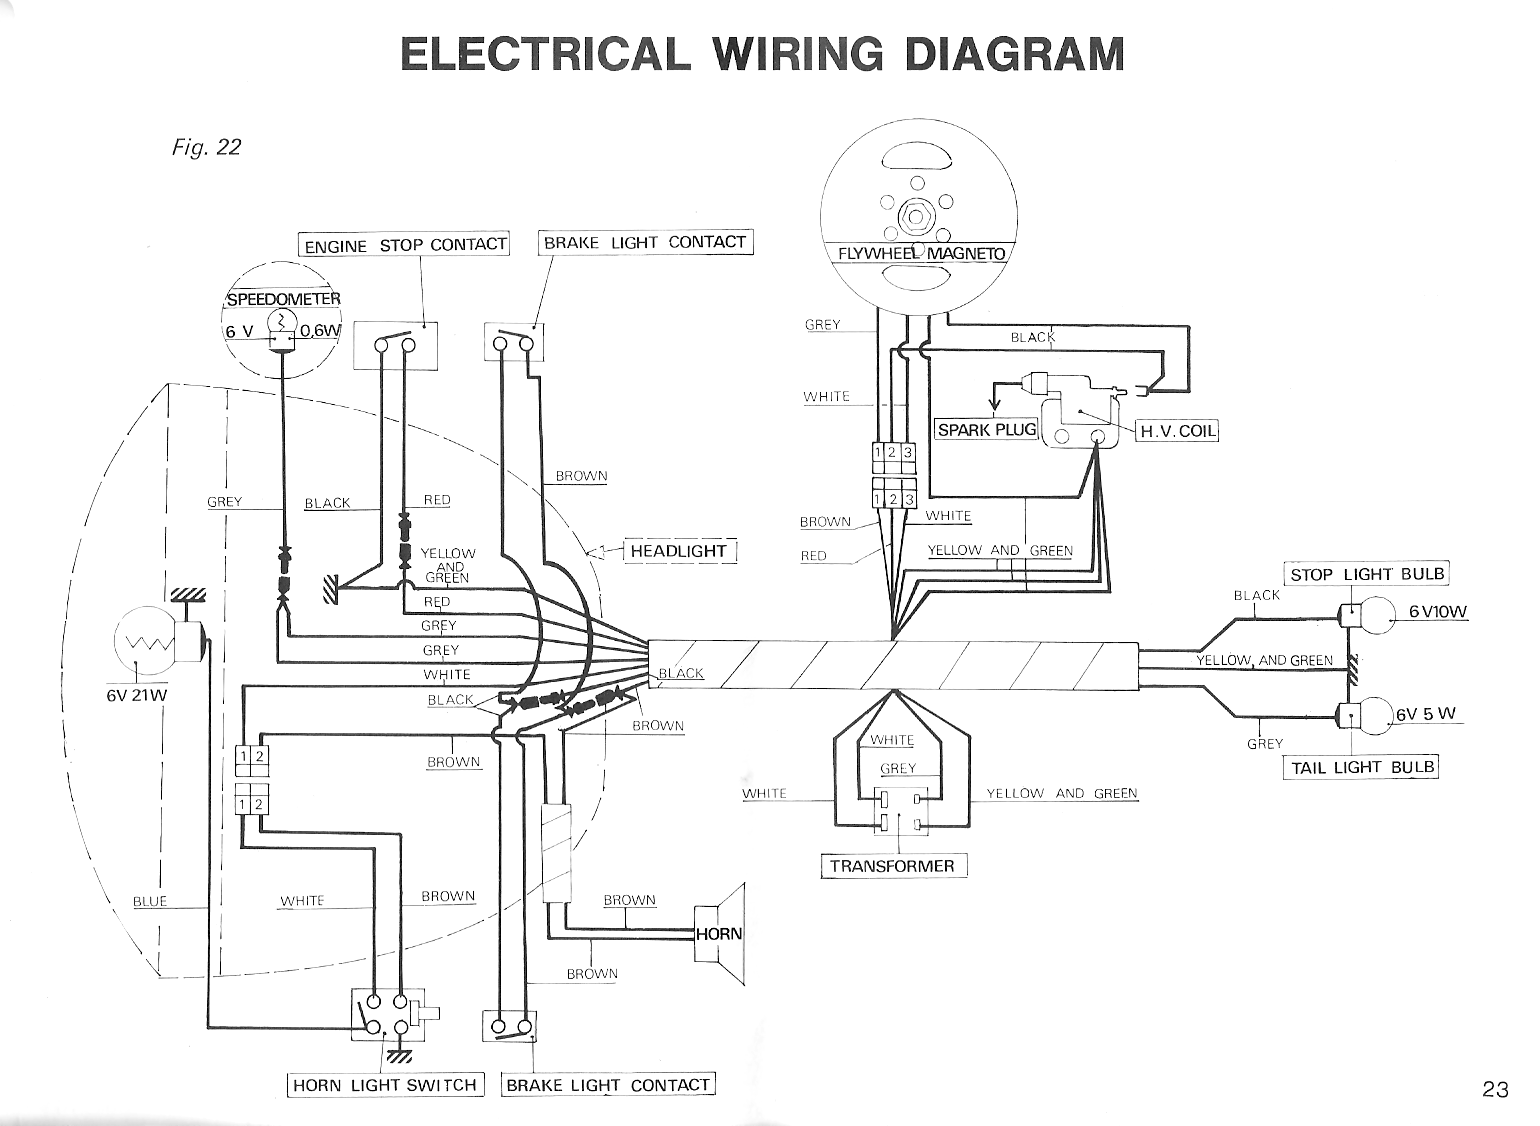 peugeot moped wiring diagram great installation of wiring diagram \u2022 Wiring Diagram for Tao Tao 150Cc peugeot wiring diagrams moped wiki rh mopedarmy com 50cc scooter wiring diagram moped ignition diagram